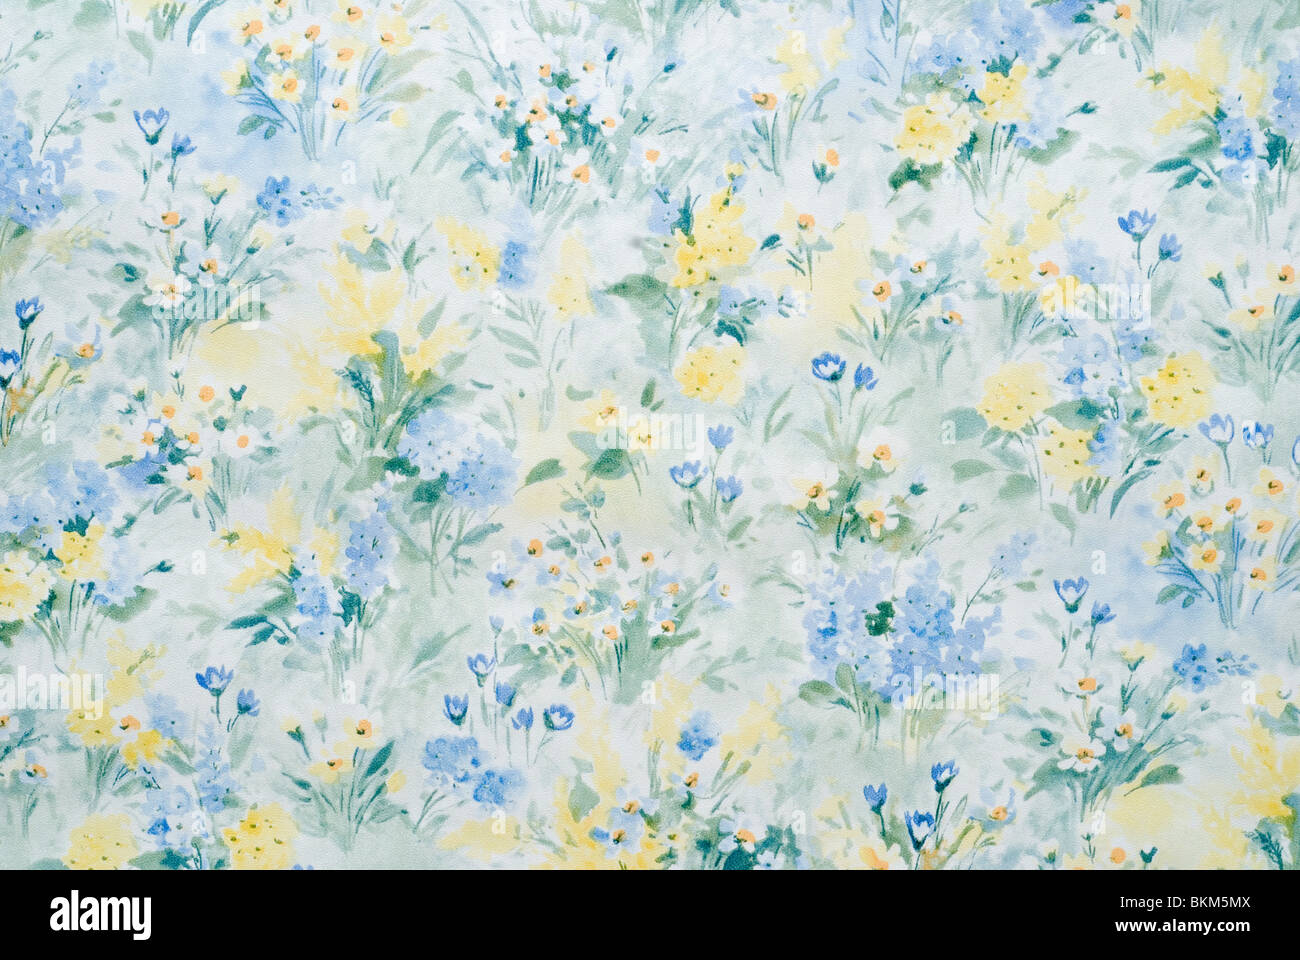 Flowered Wallpaper Stock Photos Flowered Wallpaper Stock Images